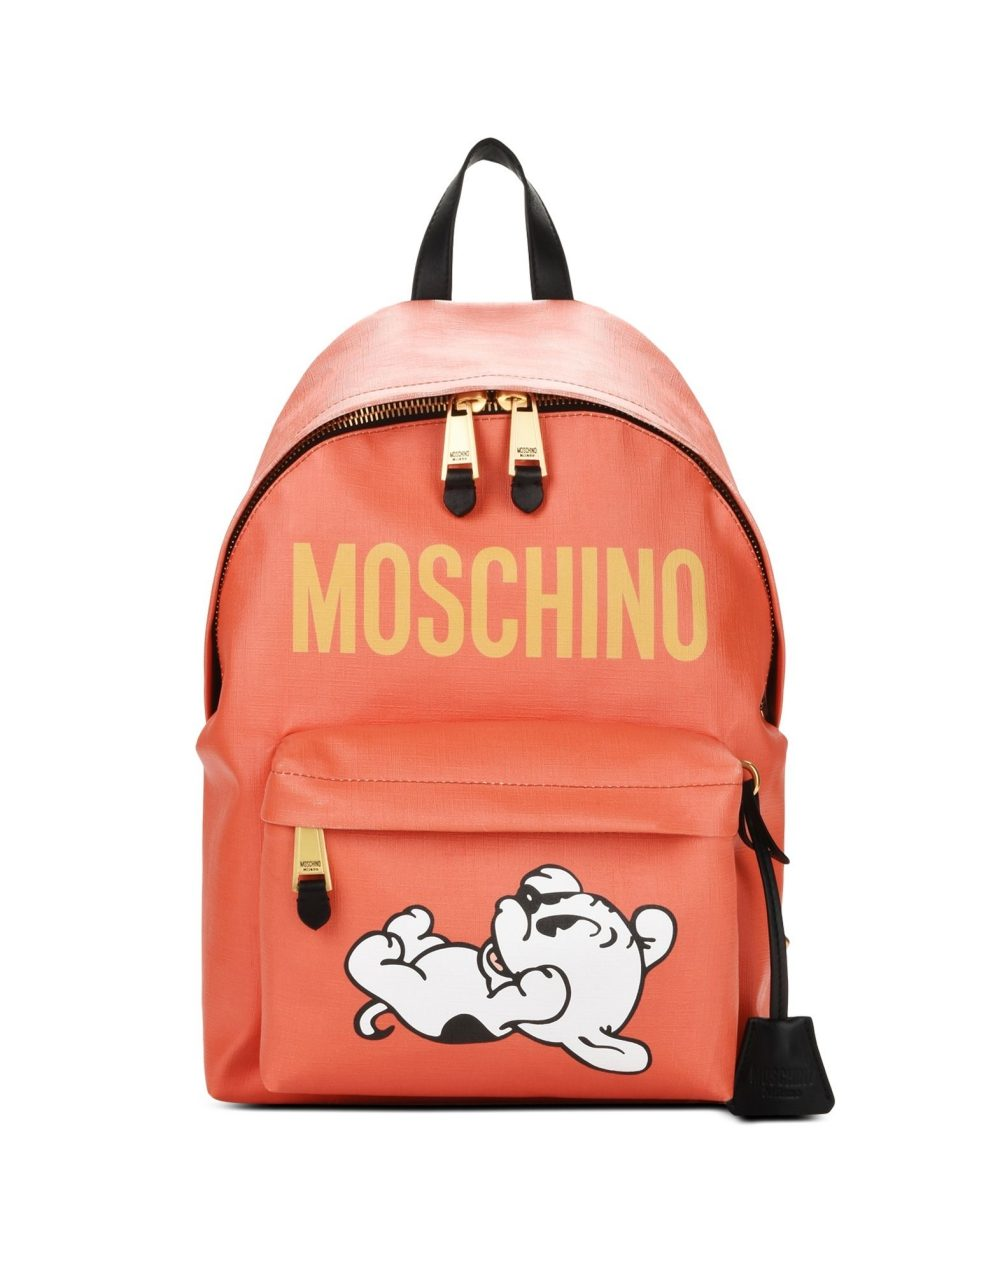 Pudgy backpack